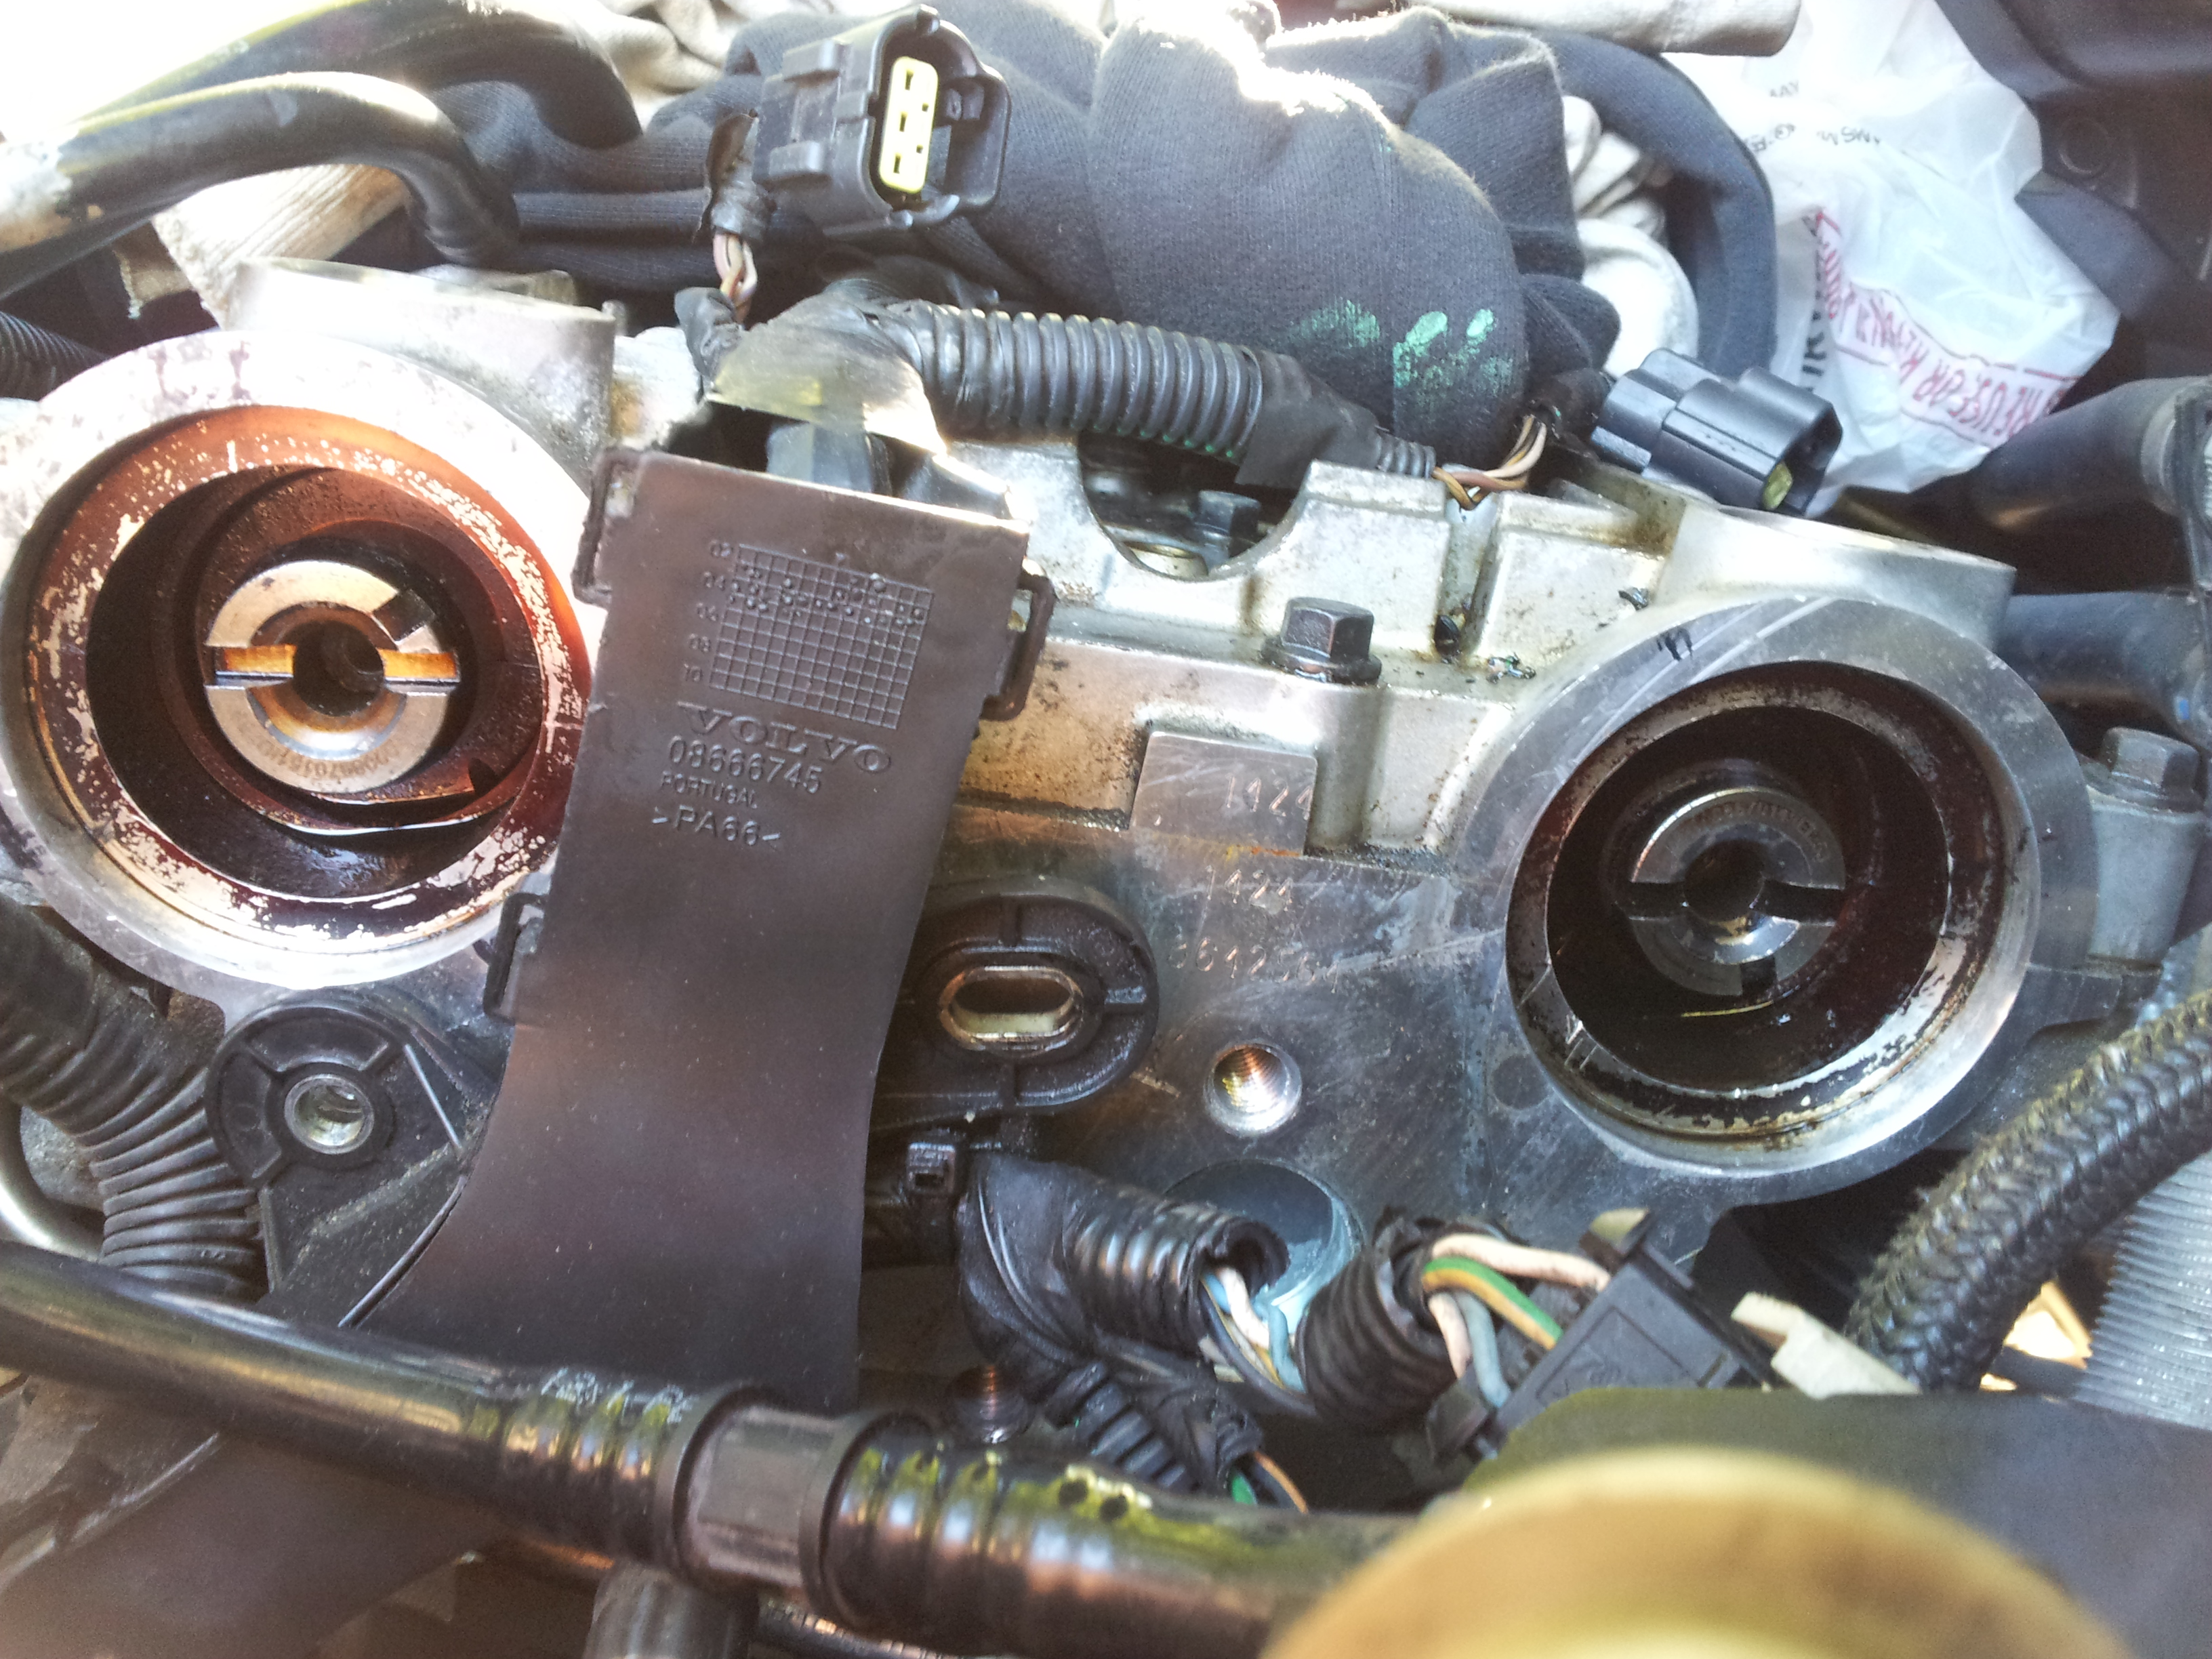 2006 Volvo S40 T5 Camshaft Alignment Issue - Volvo Forums